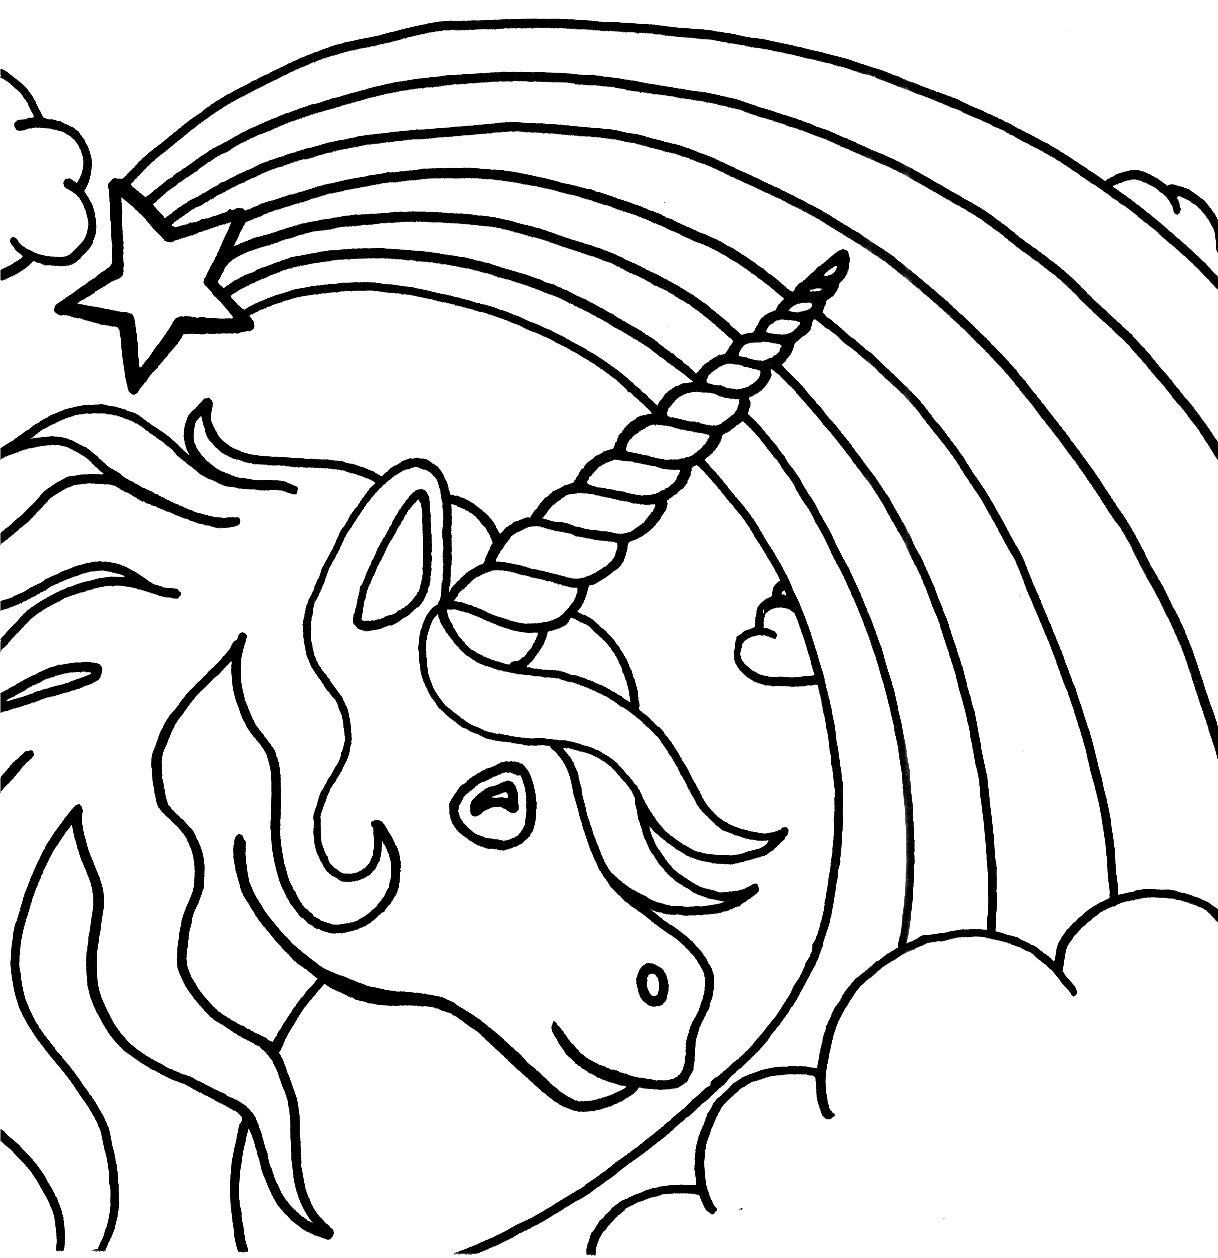 unicorn coloring to print unicorn coloring pages to download and print for free coloring unicorn print to